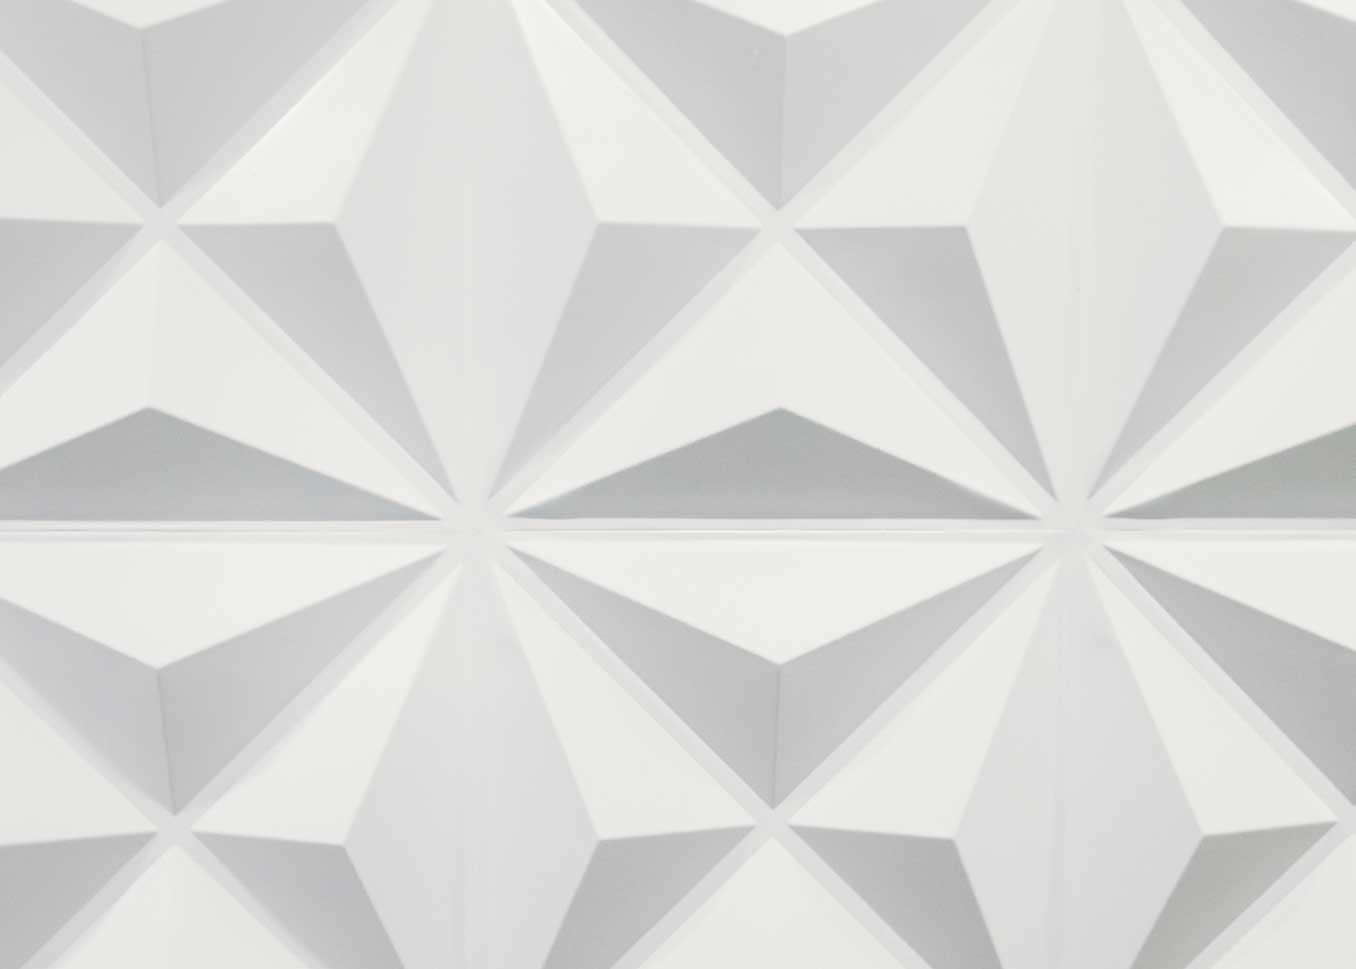 Photo of a geometric wall decoration